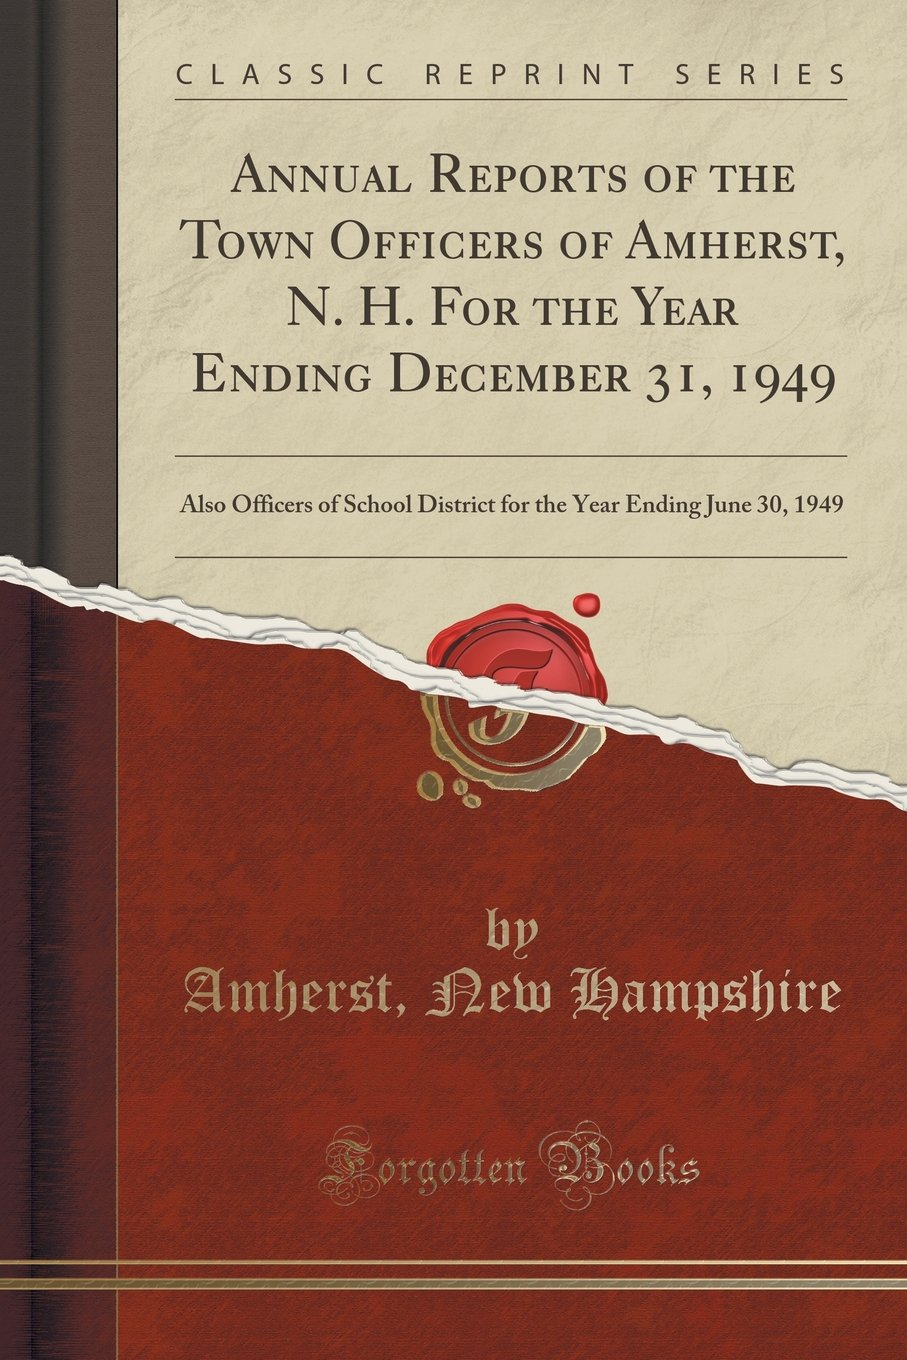 Download Annual Reports of the Town Officers of Amherst, N. H. For the Year Ending December 31, 1949: Also Officers of School District for the Year Ending June 30, 1949 (Classic Reprint) pdf epub